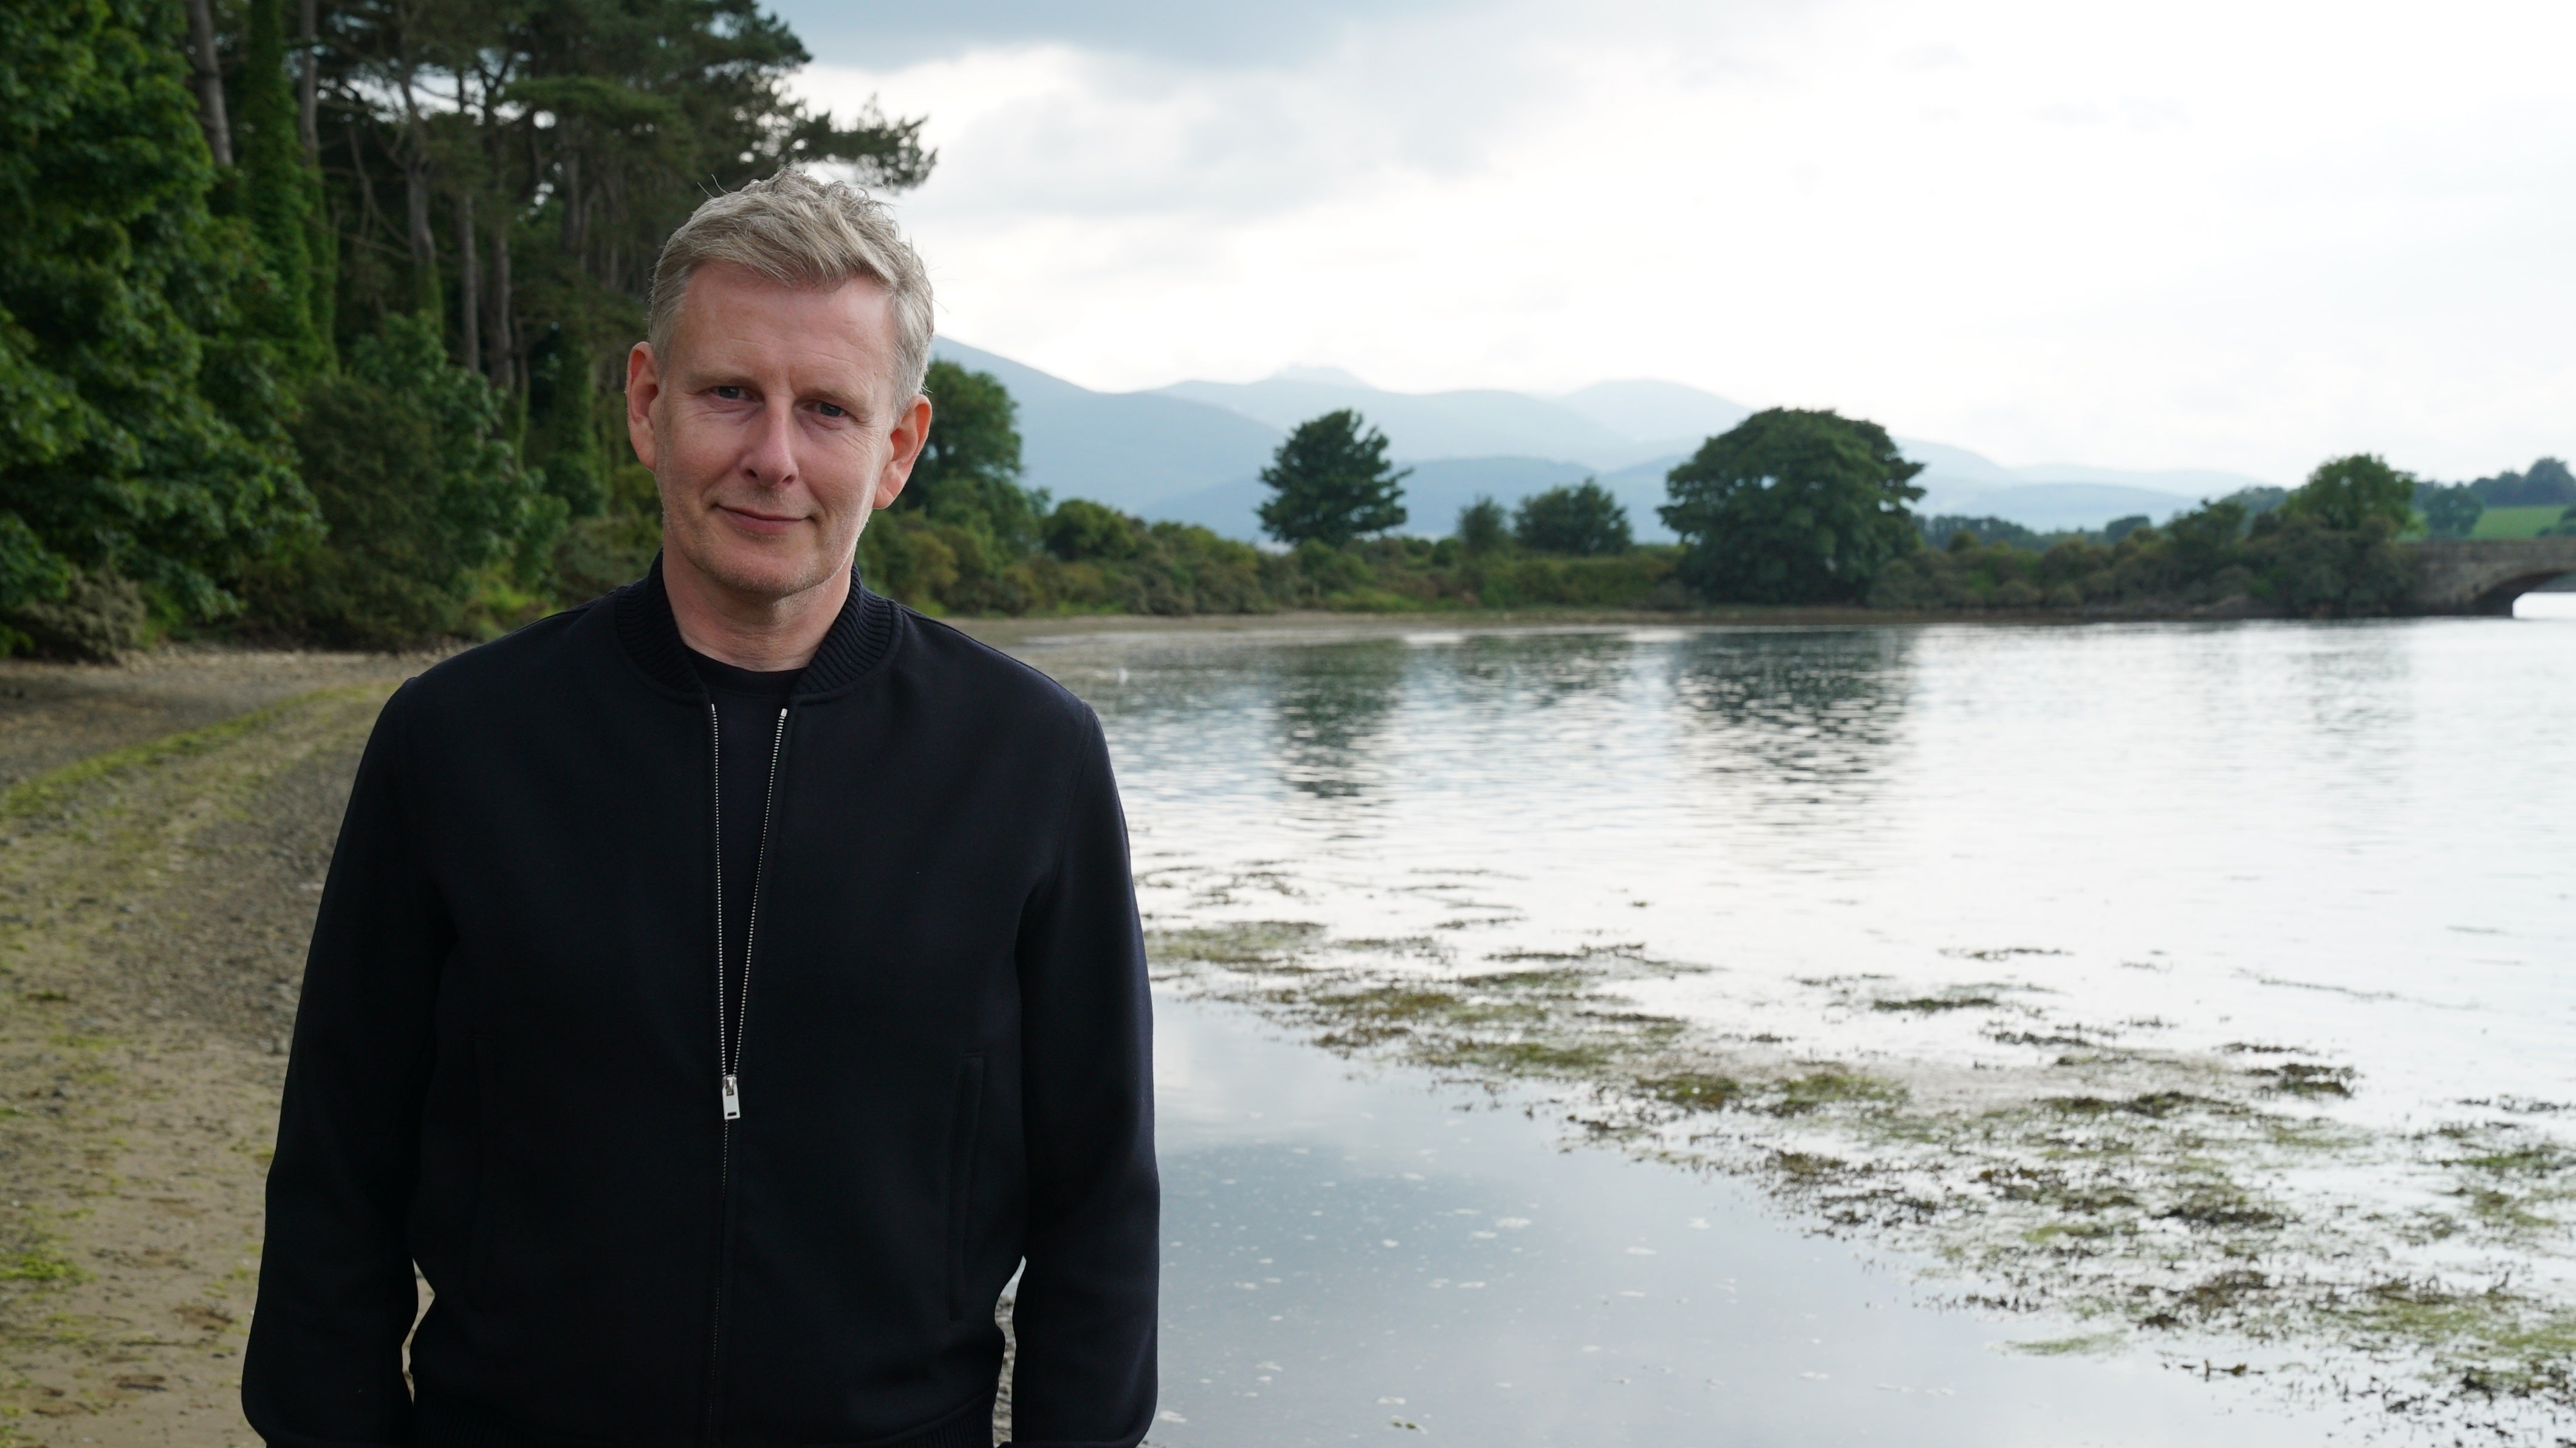 Patrick Kielty at Dundrum, County Down from 100 Years of Union. Copyright: Seamus McCracken - Dragonfly TV